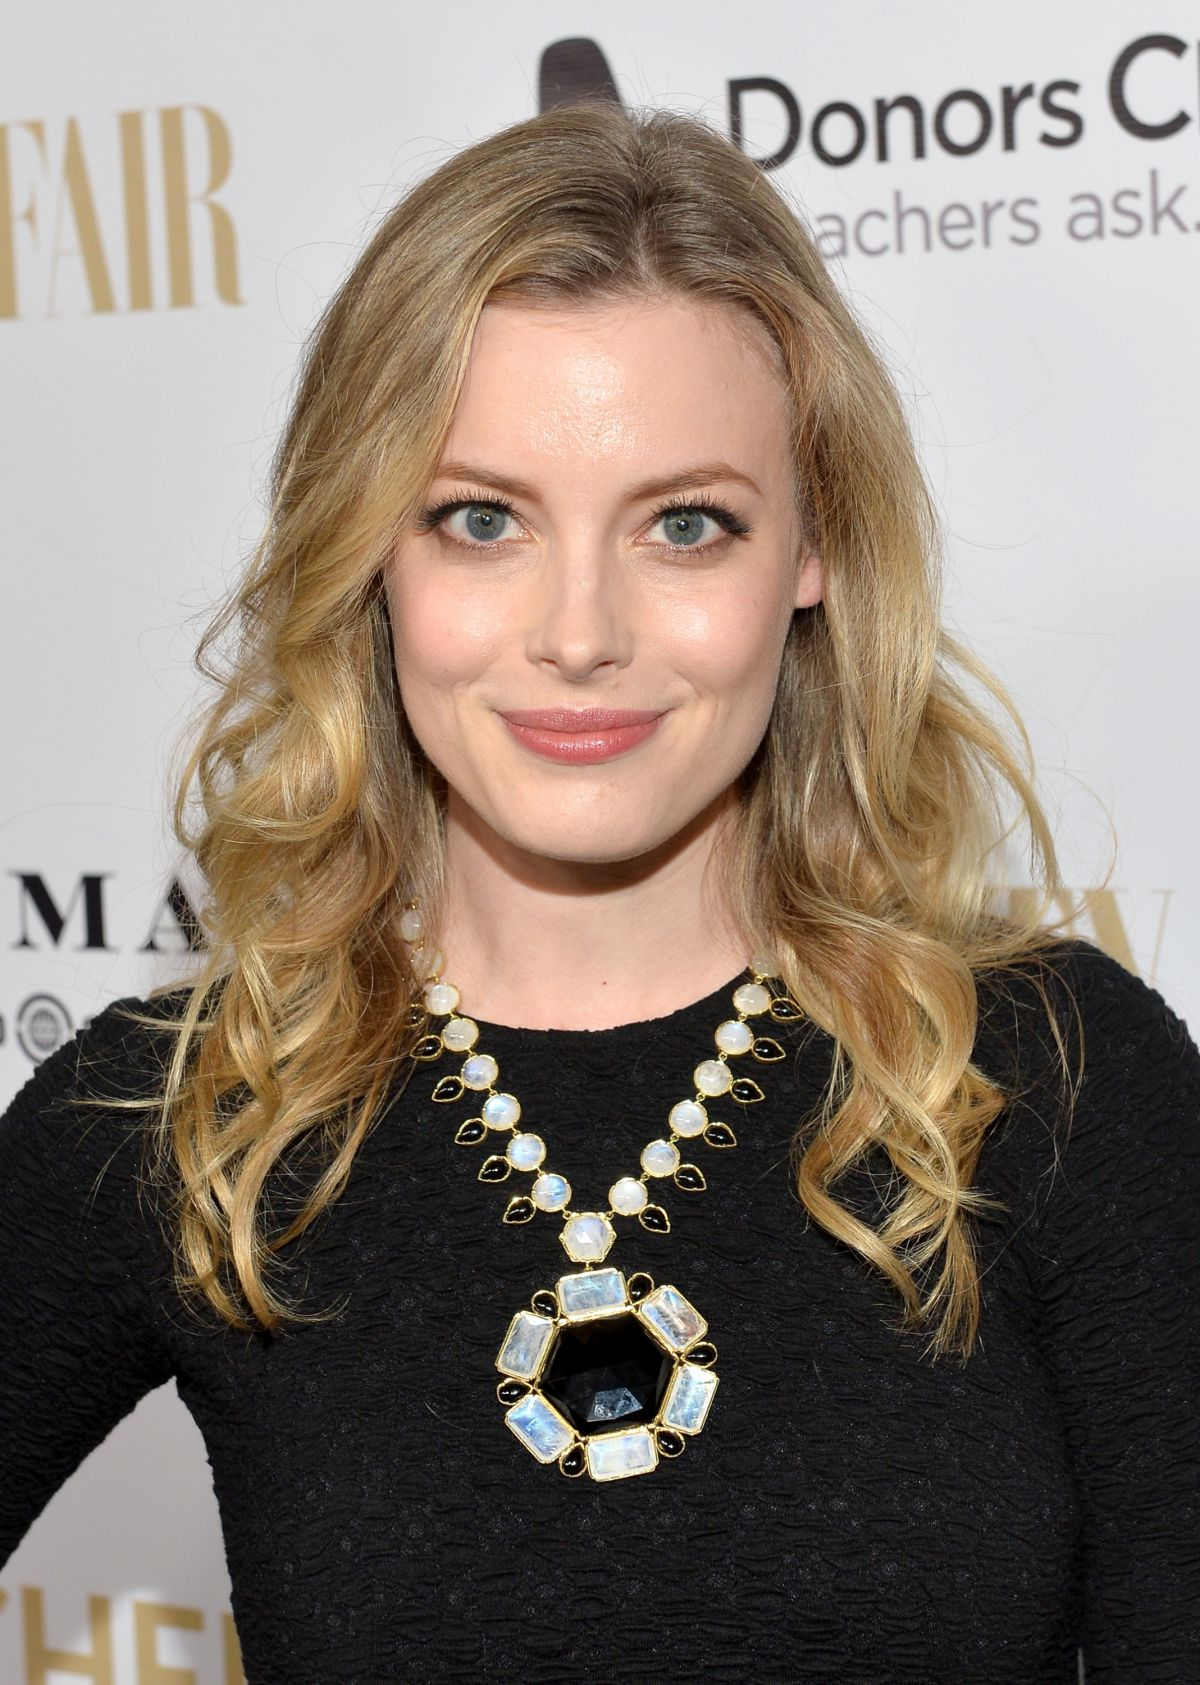 GILLIAN JACOBS at Annie Leibovitz Sumo-size Book Launch in Los Angeles